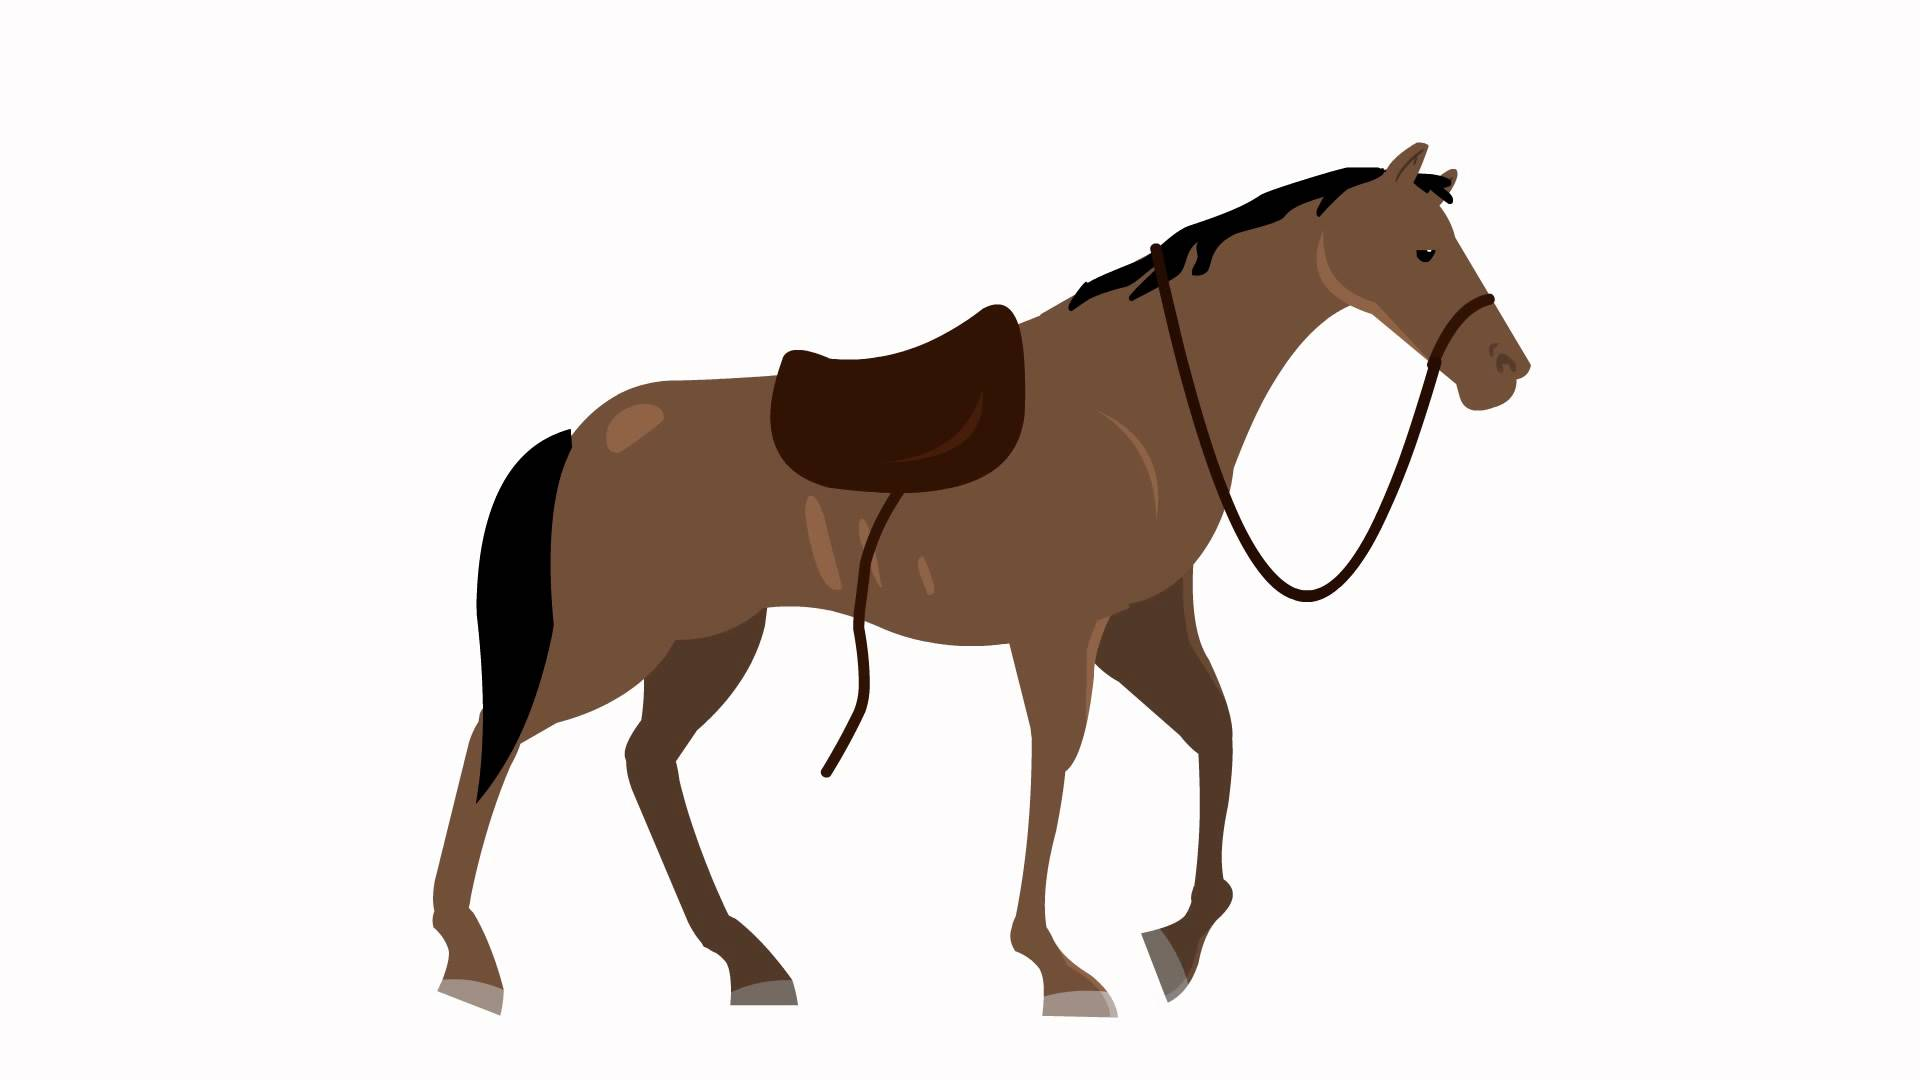 Cute Equestrian Wallpapers Free Animated Horses Download Free Clip Art Free Clip